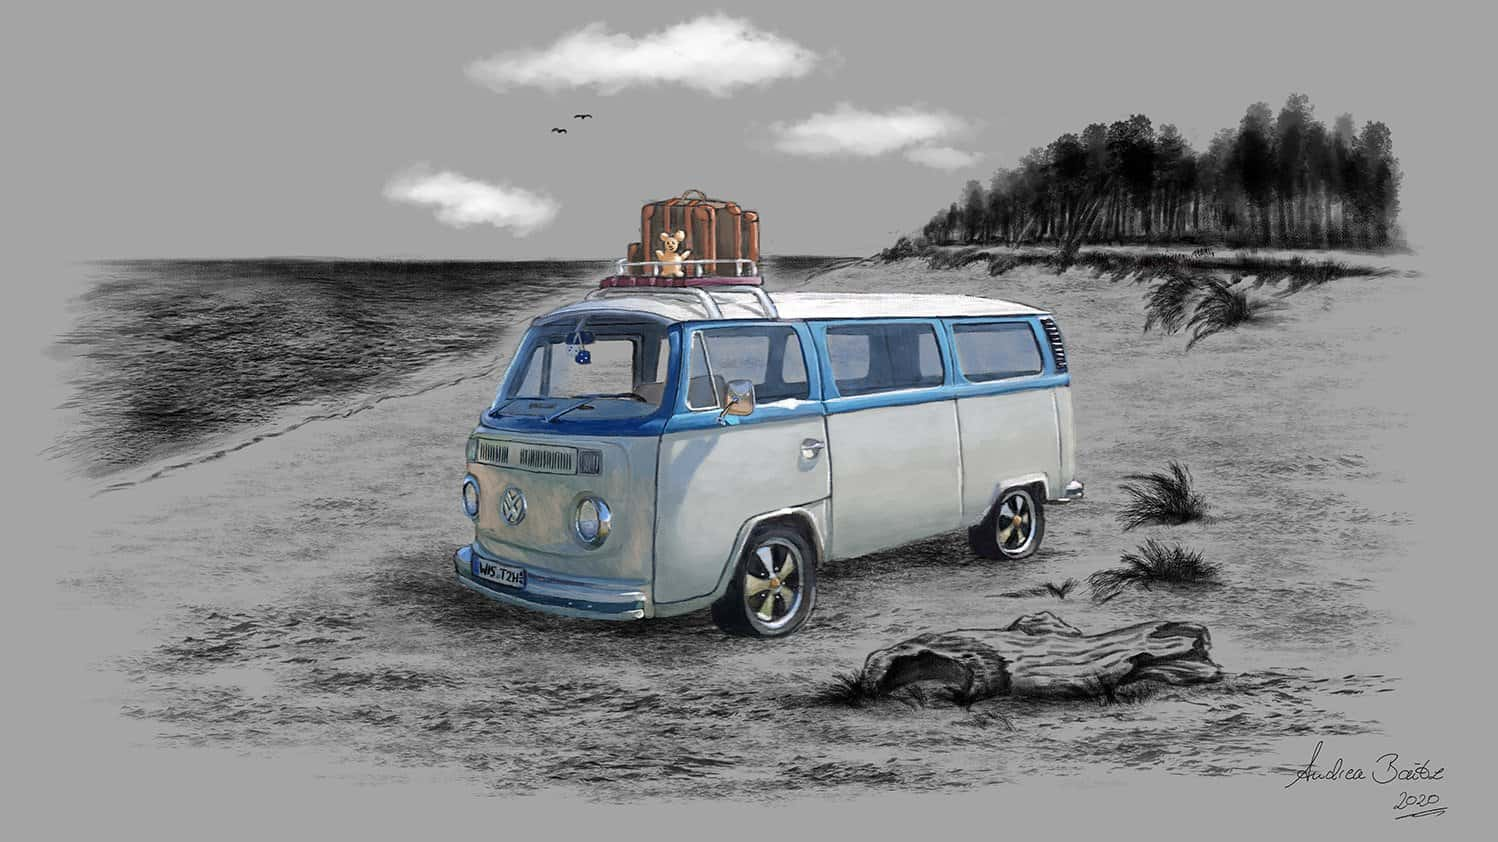 Tattoo VW Bulli, Illustration, Digital Painting, Tattoo Motiv, Strand, Ostsee